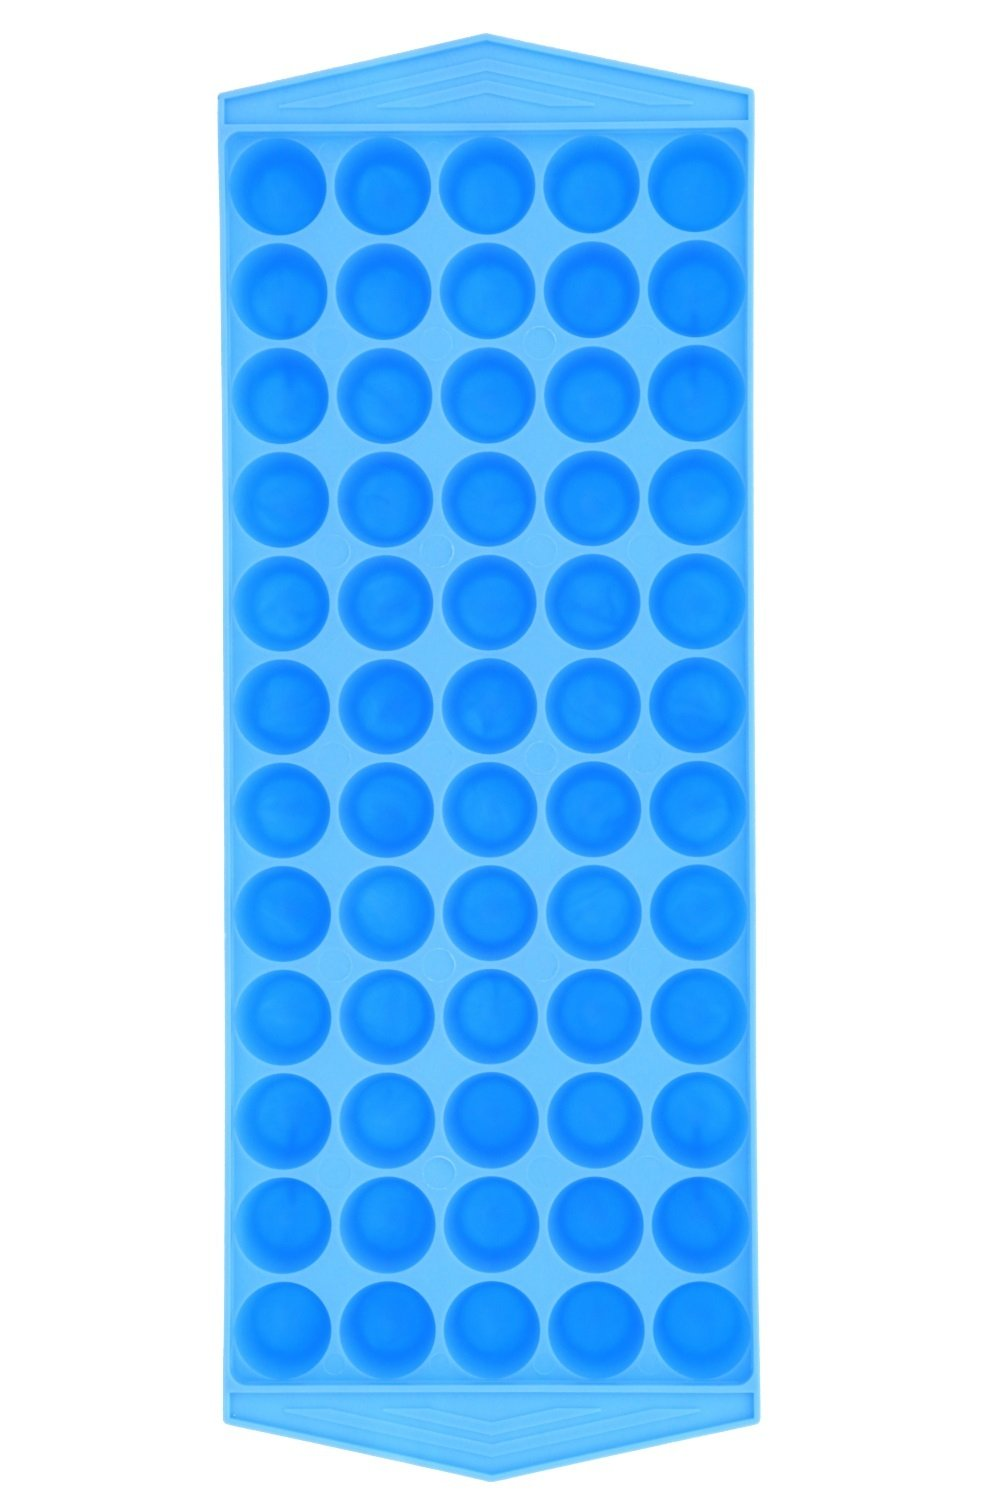 Arrow Home Products Arrow 60 Cube Ice Tray ,Blue Arrow Plastic AX-AY-ABHI-80891 3 Pack